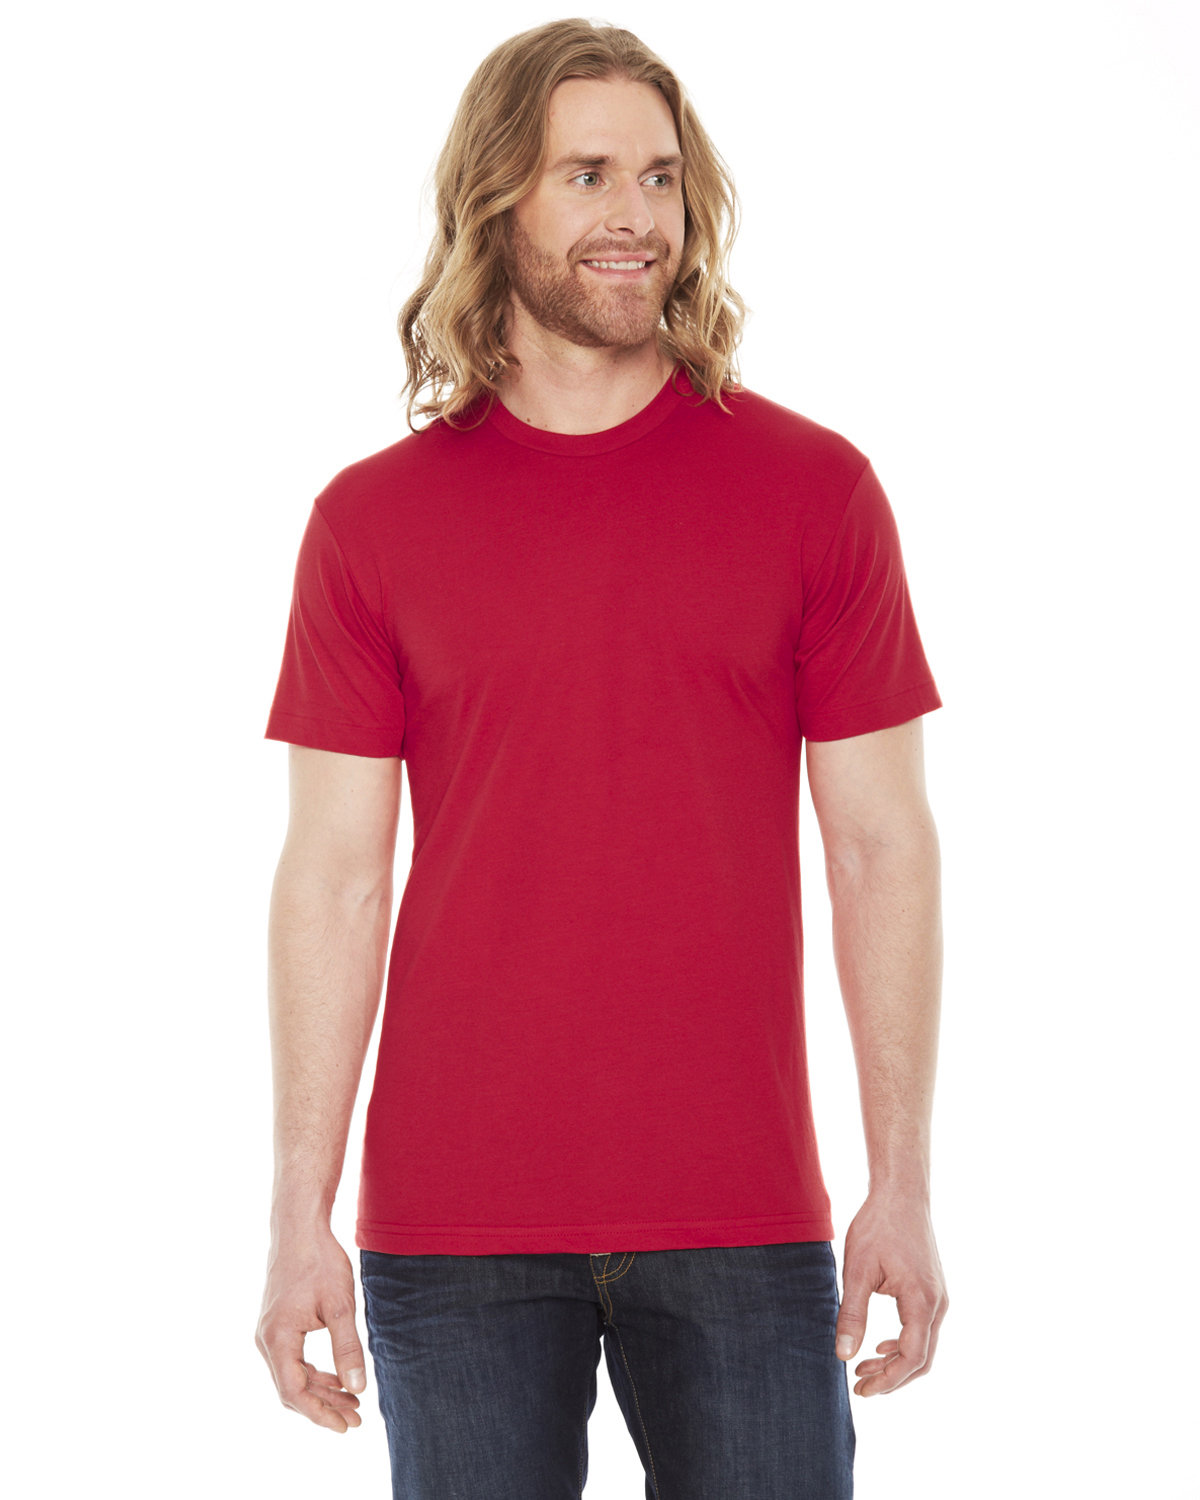 American Apparel Unisex Poly-Cotton USAMade Crewneck T-Shirt RED